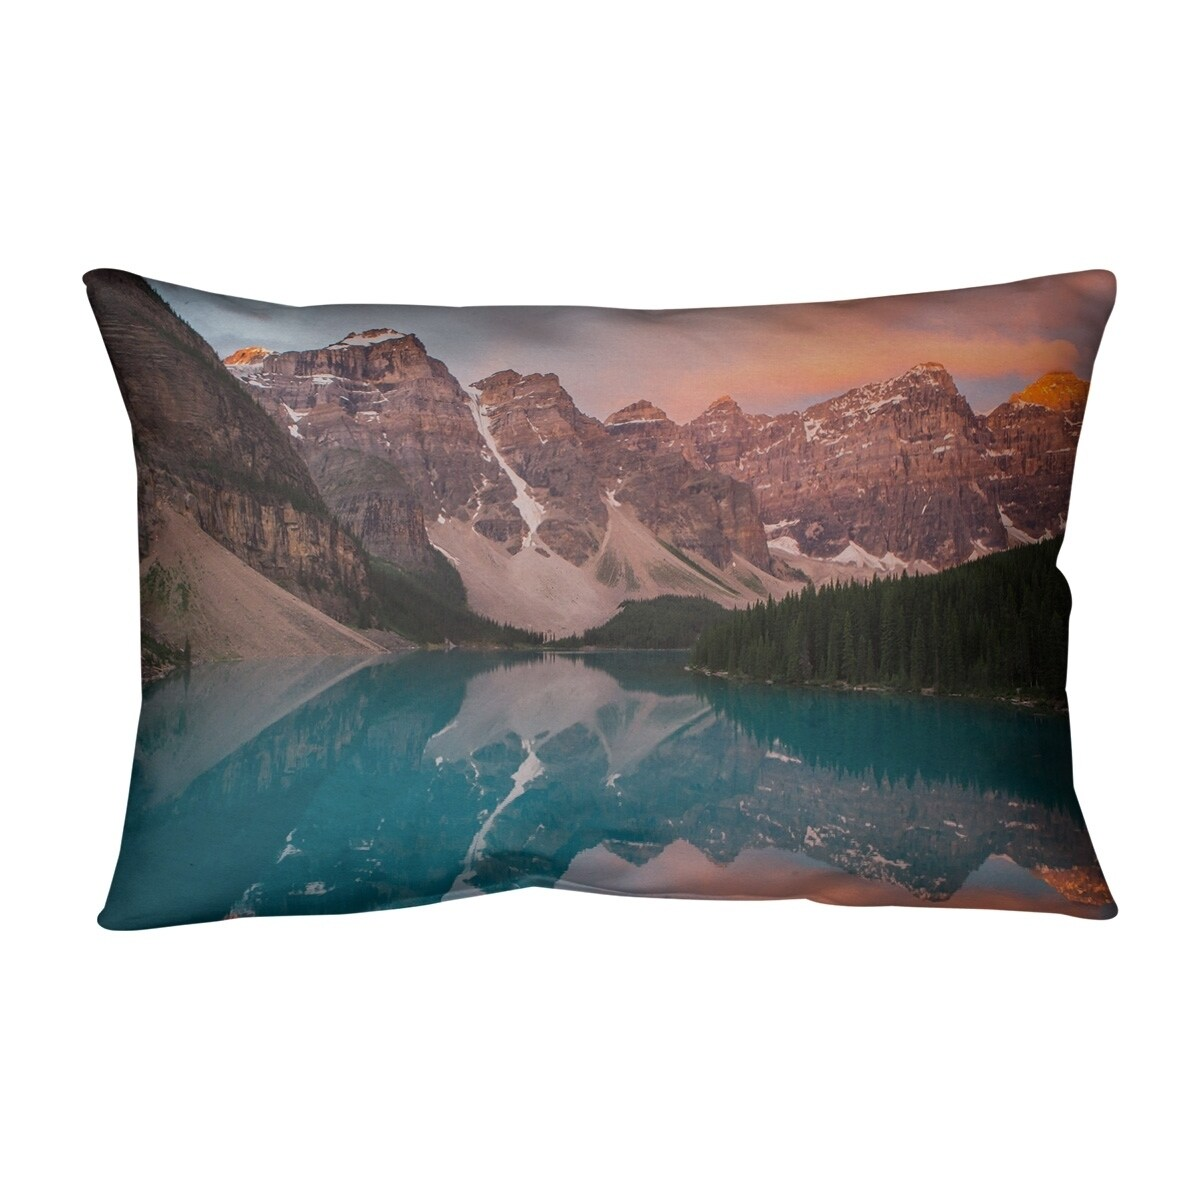 Valley And Mountains At Sunset Outdoor Lumbar Pillow On Sale Overstock 28426625